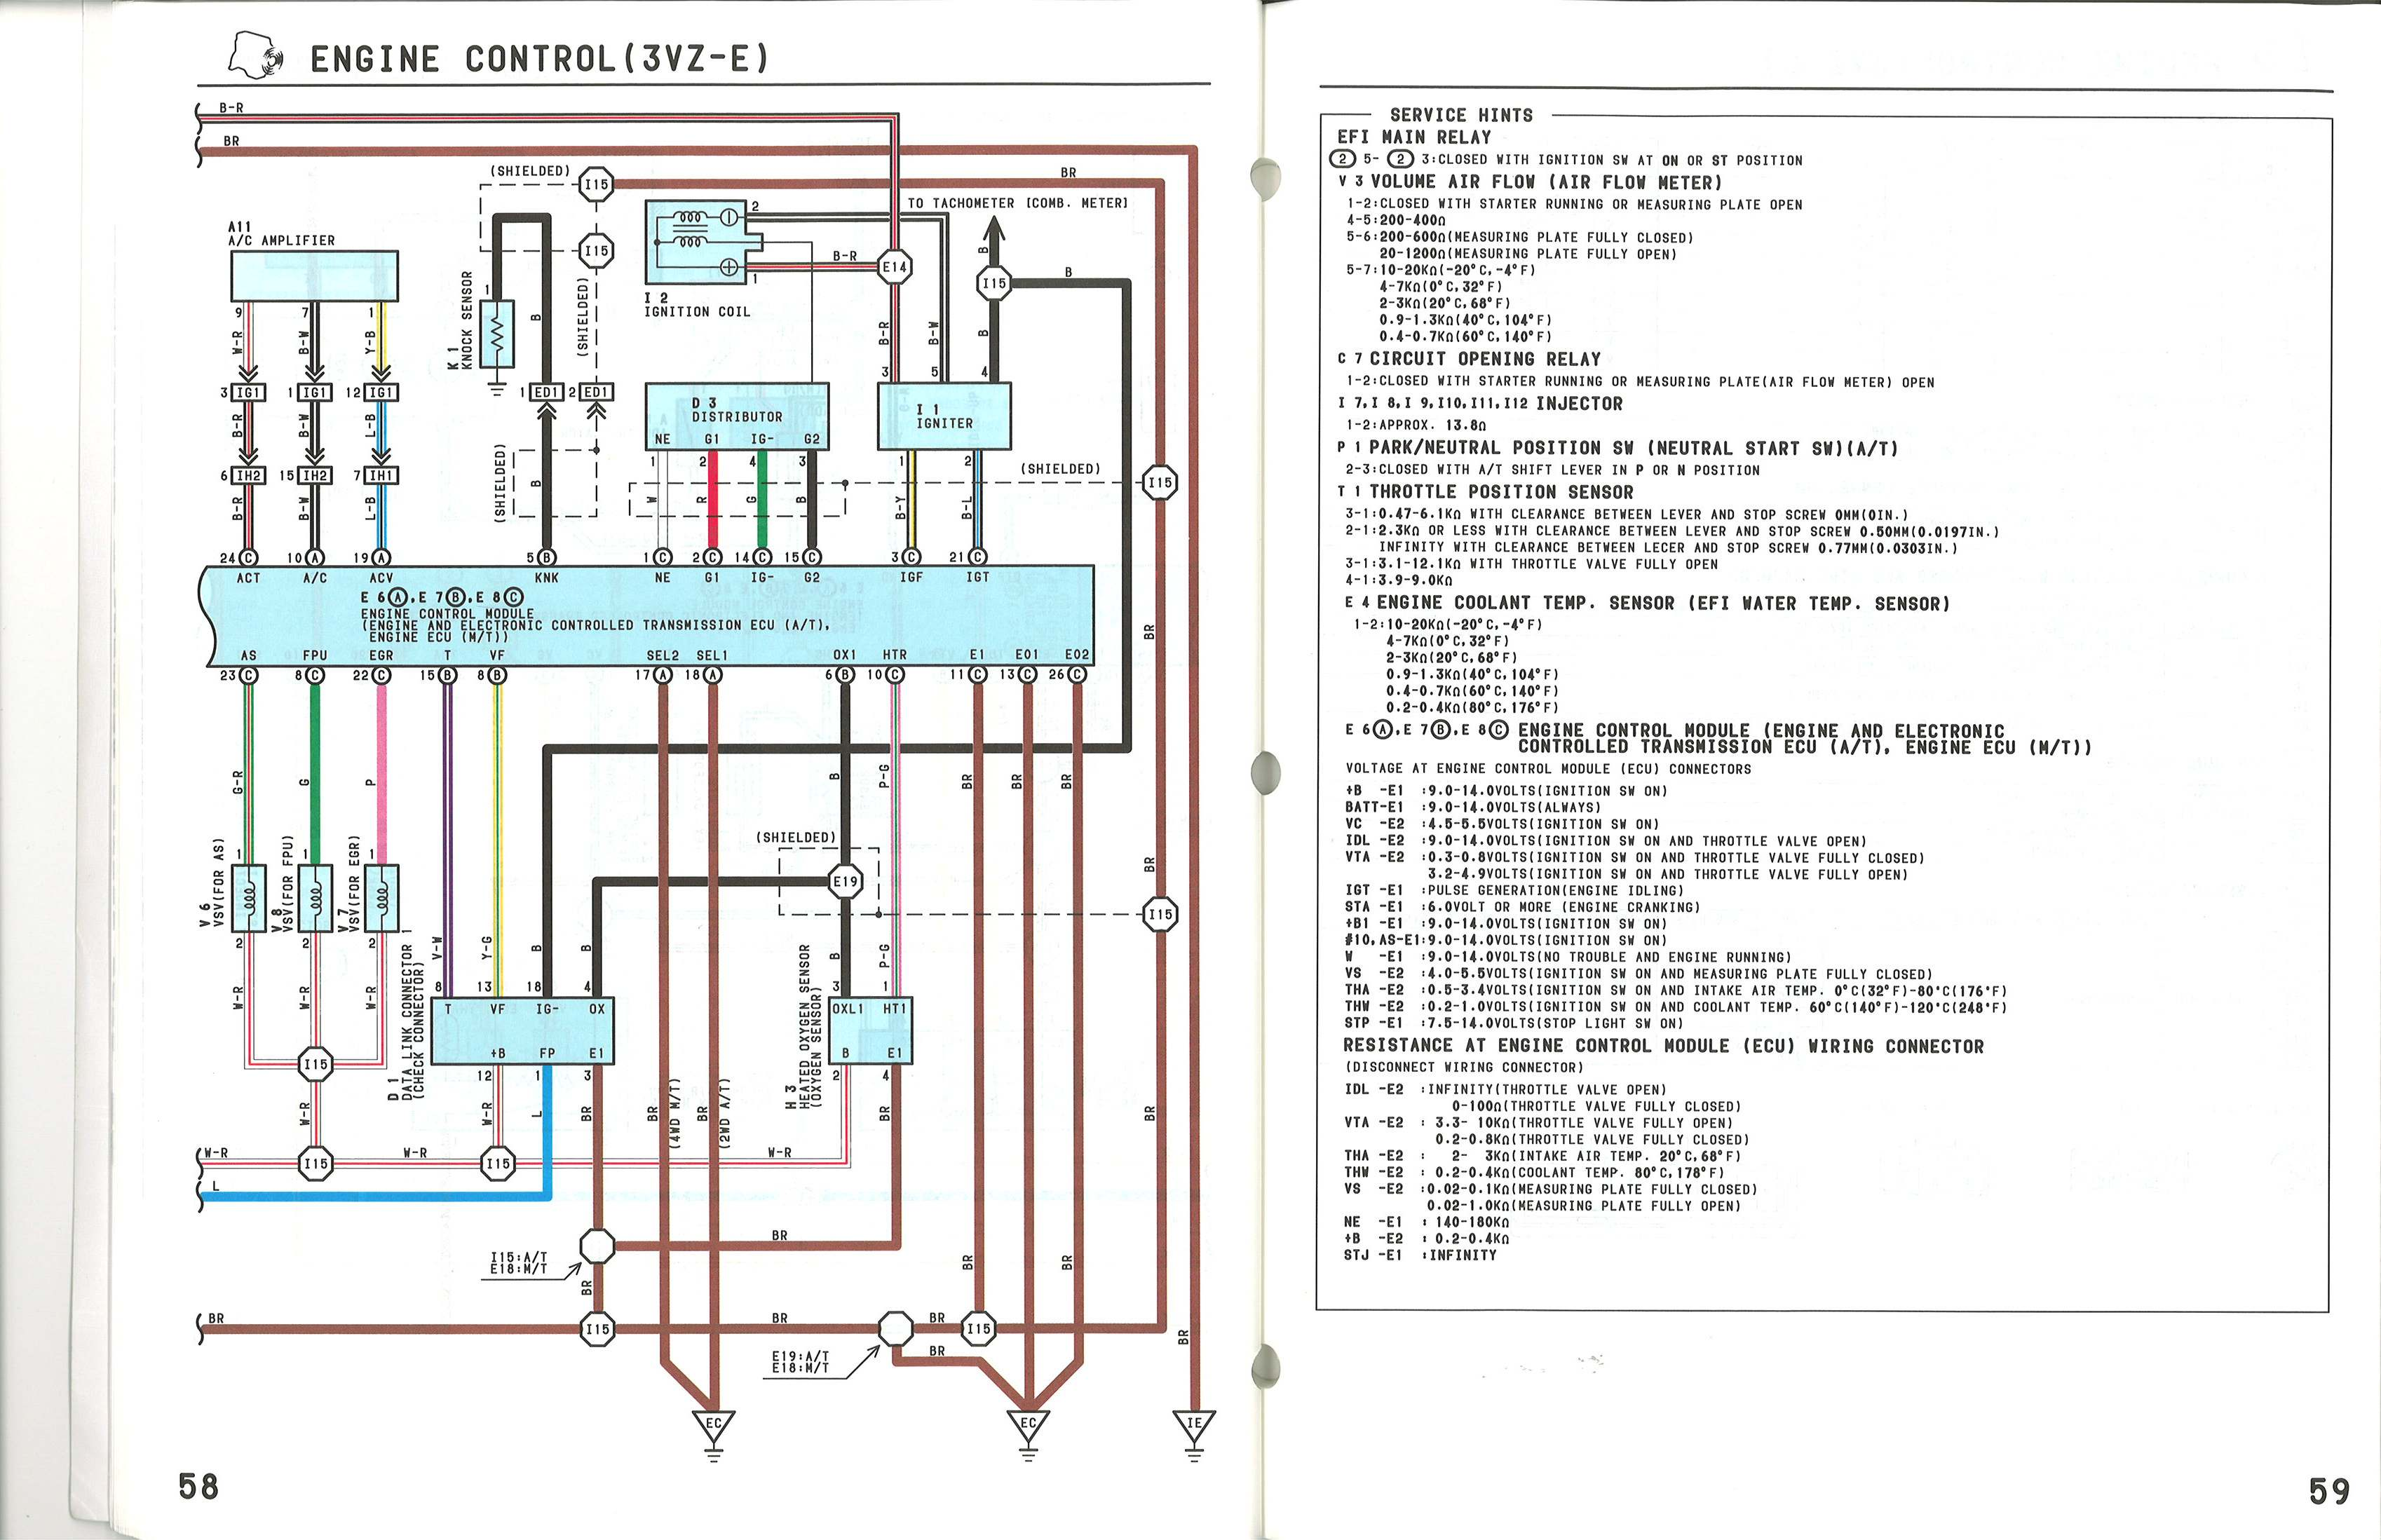 Ecu Diagram For 1988 3vz-e